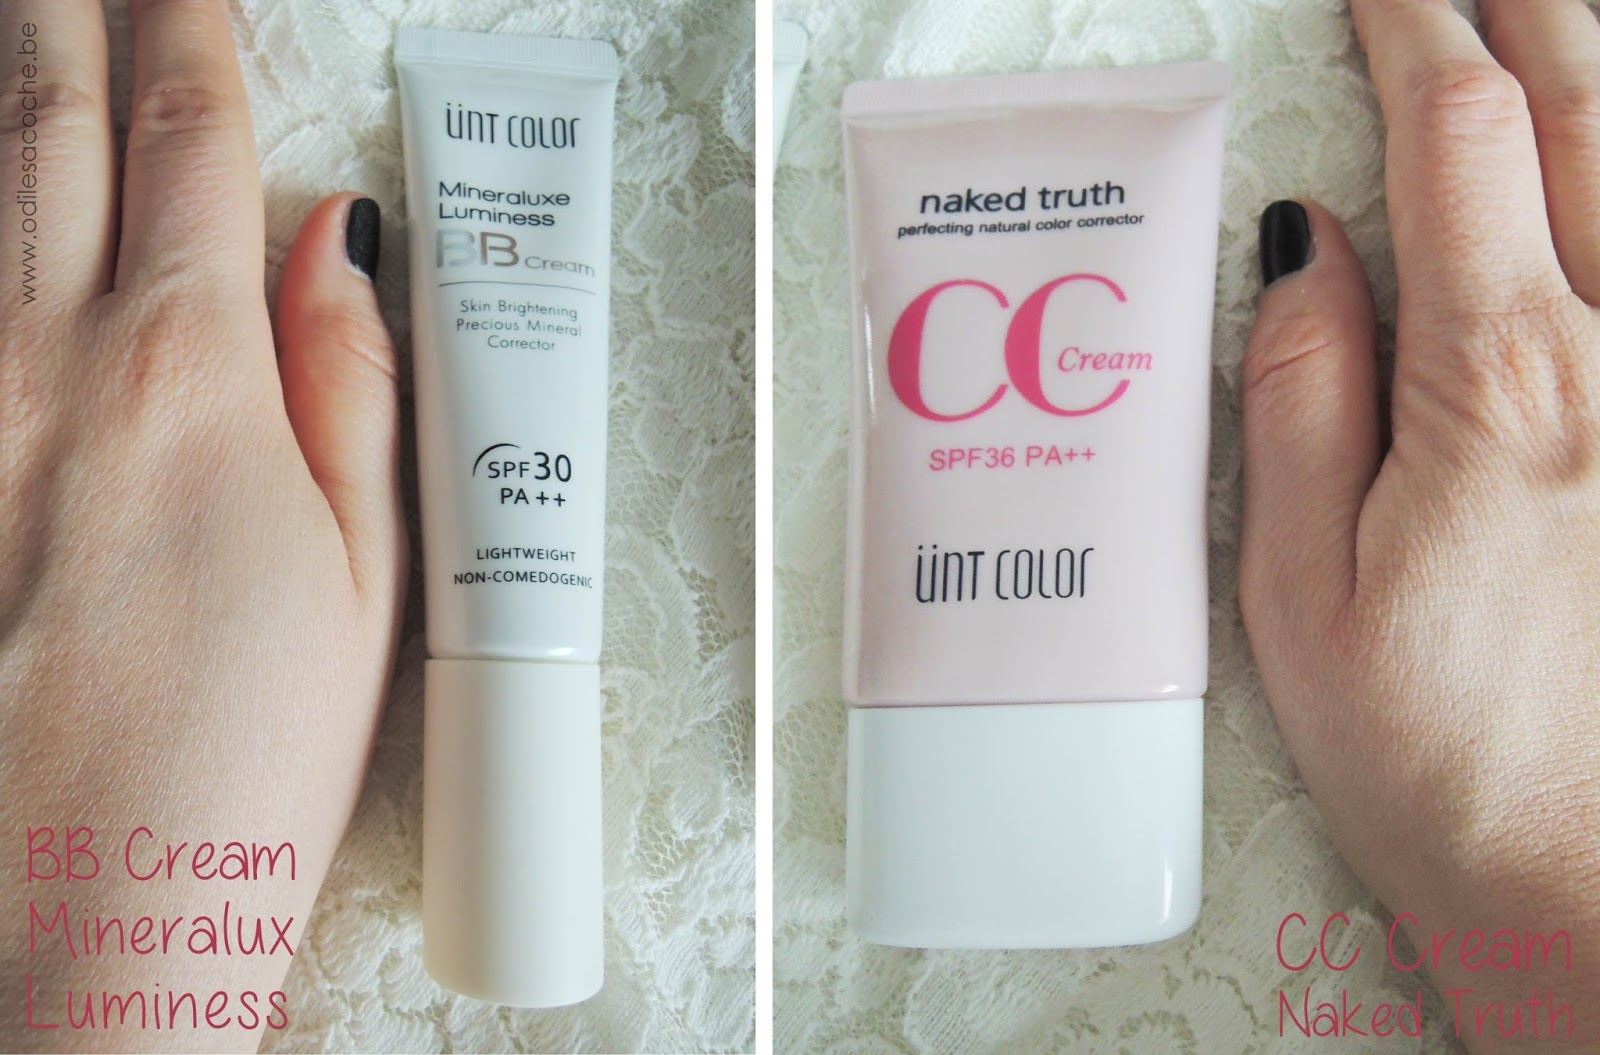 BB cream & CC Cream ÜNT